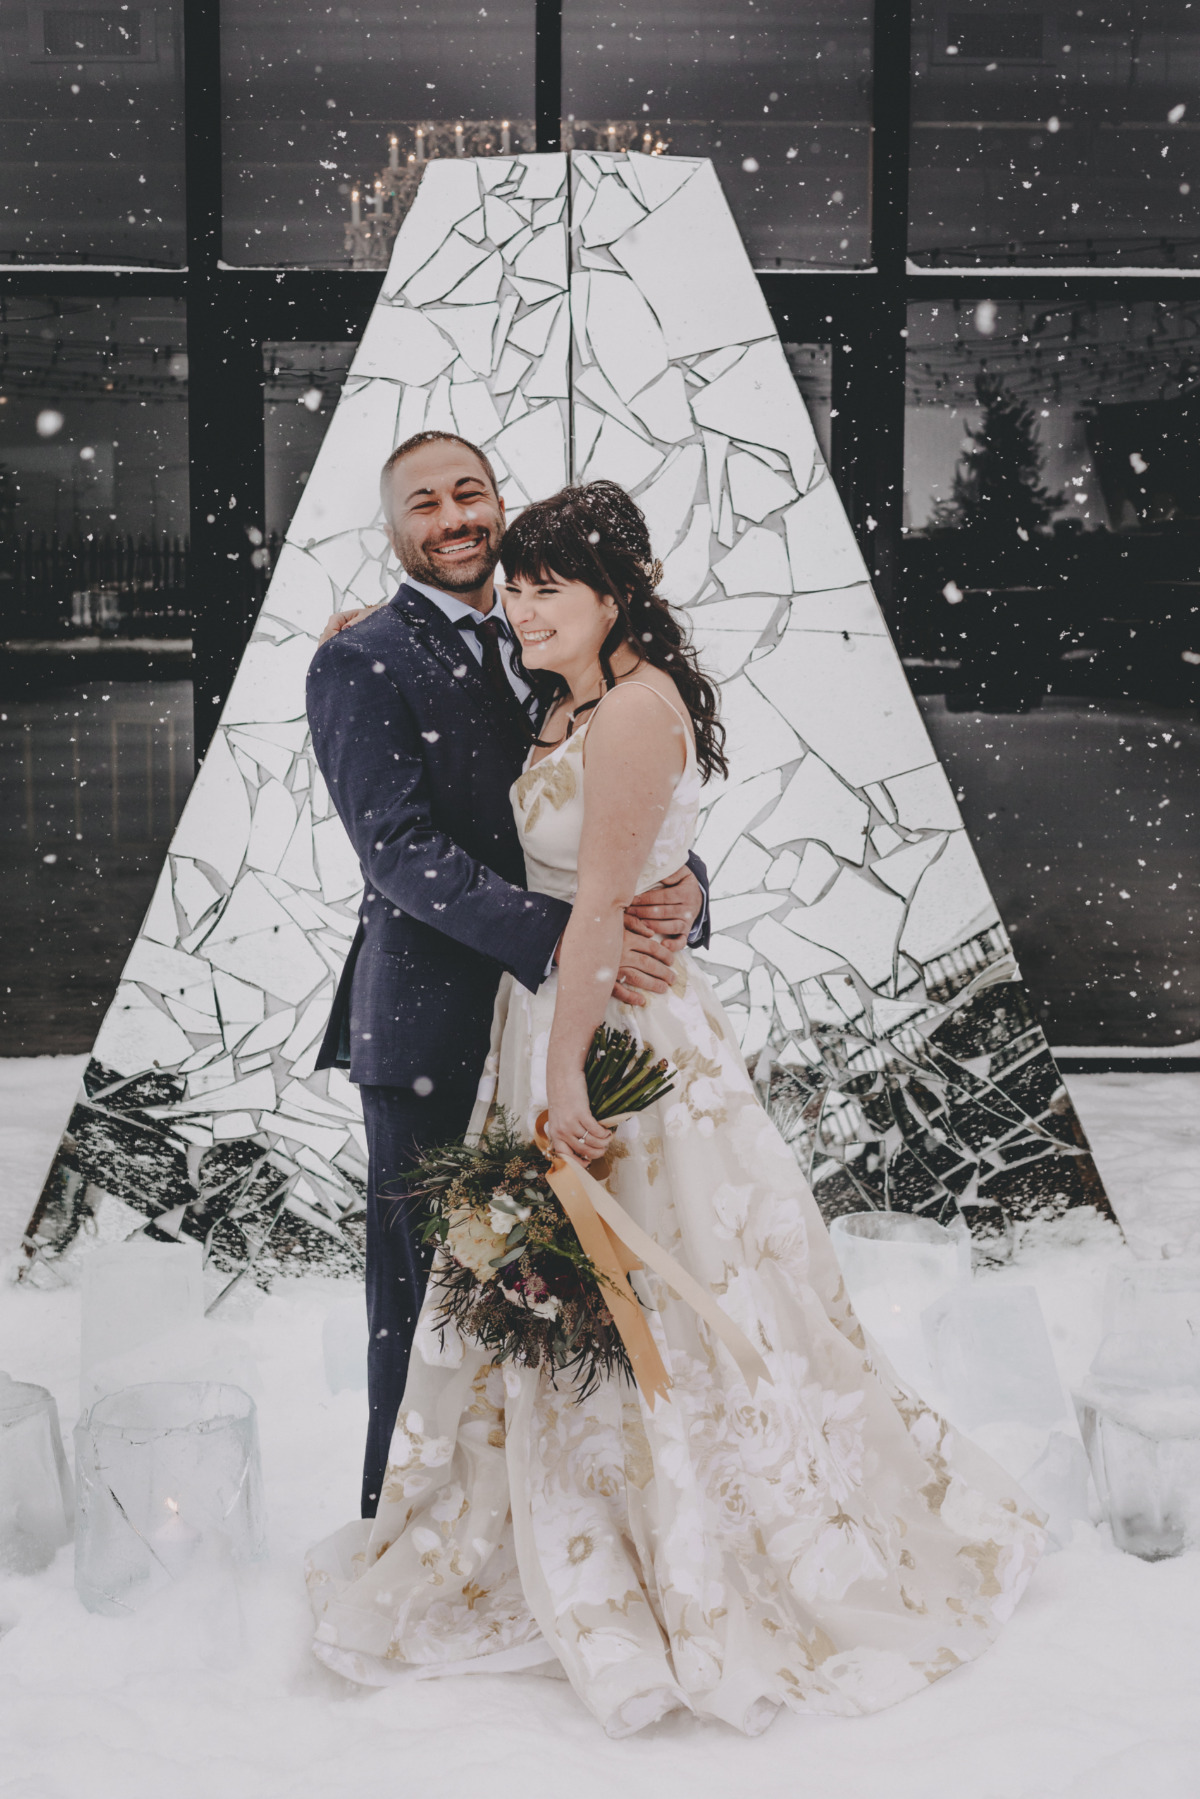 This Super Fun Winter Wedding Will Have You Wishing For Snow